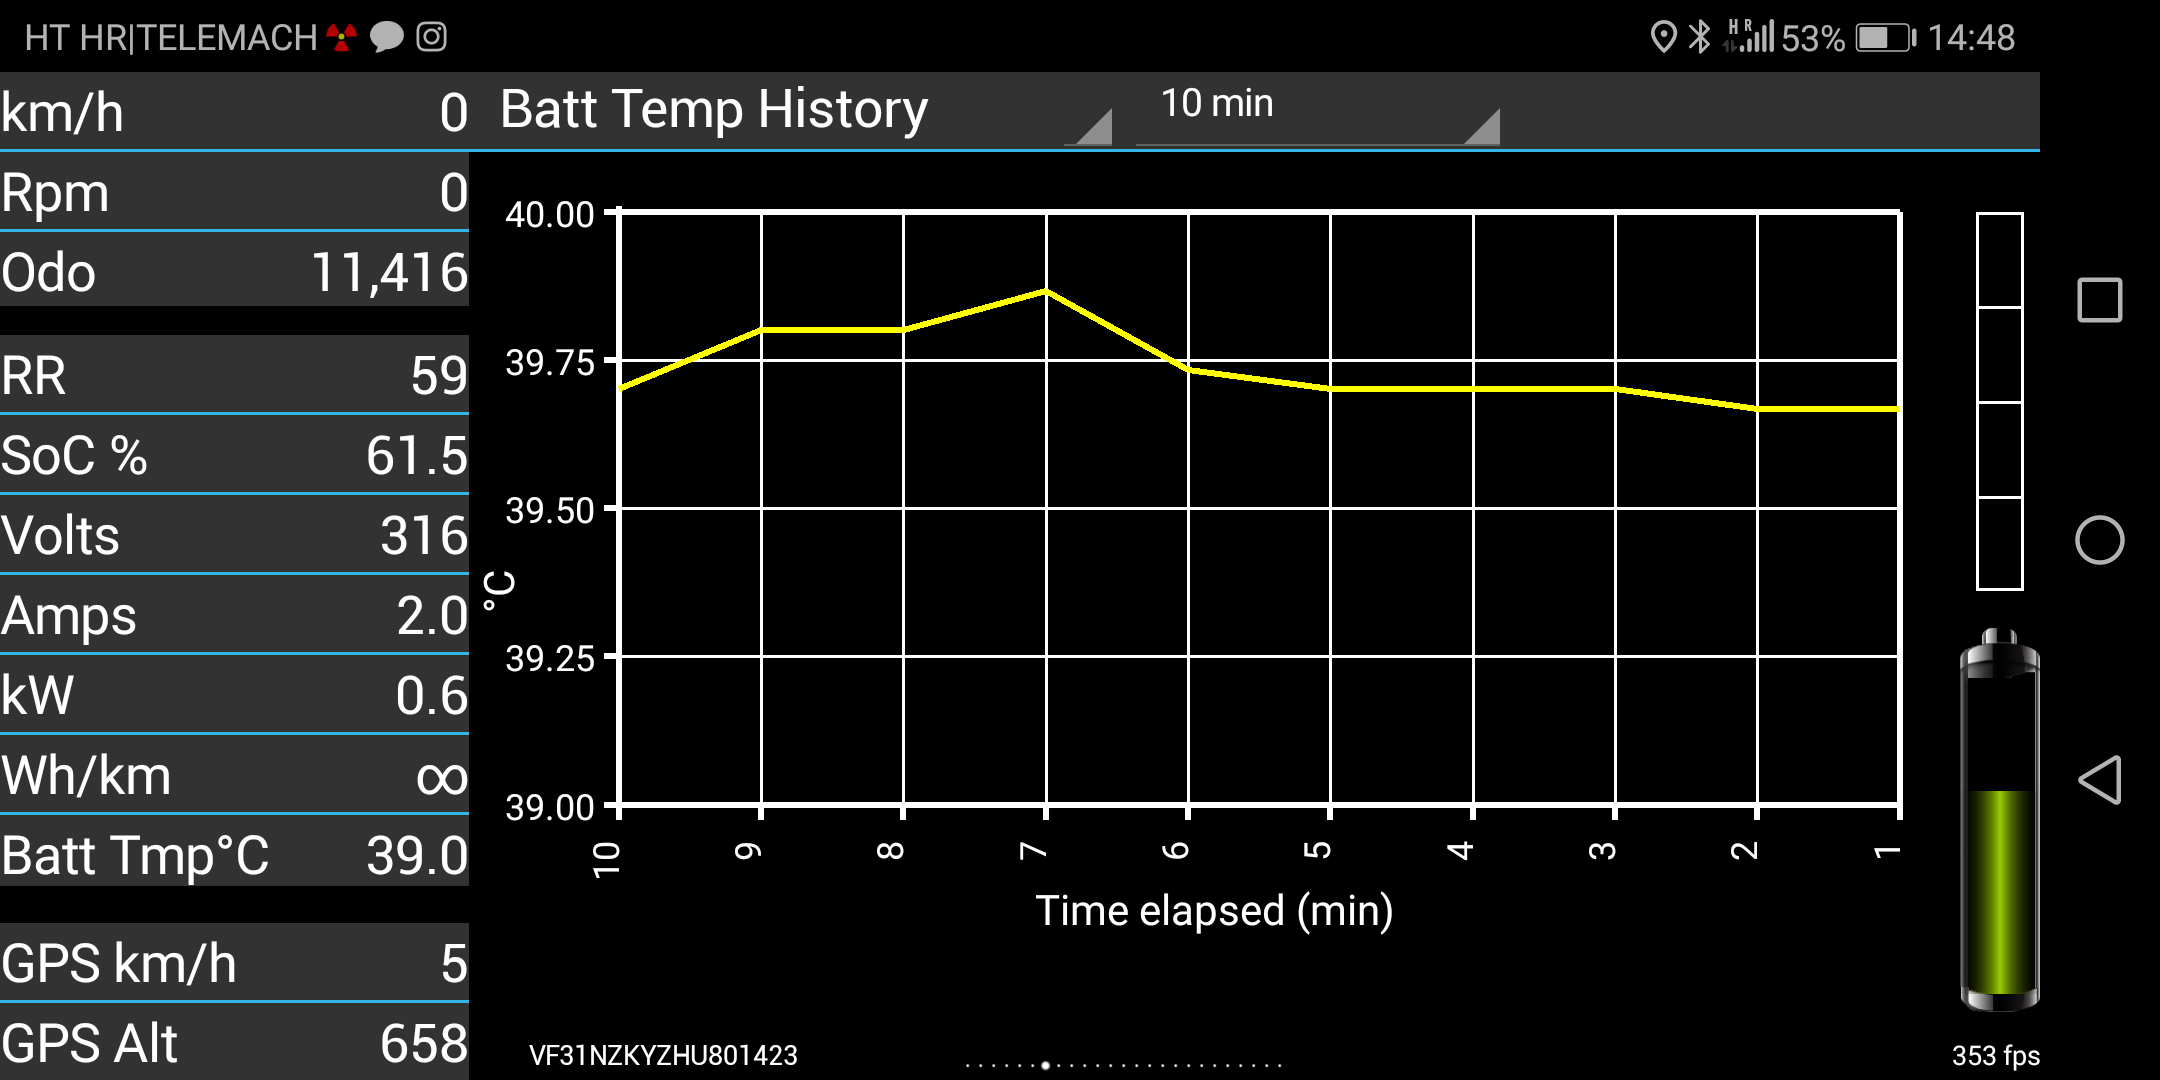 bat temp krk.png